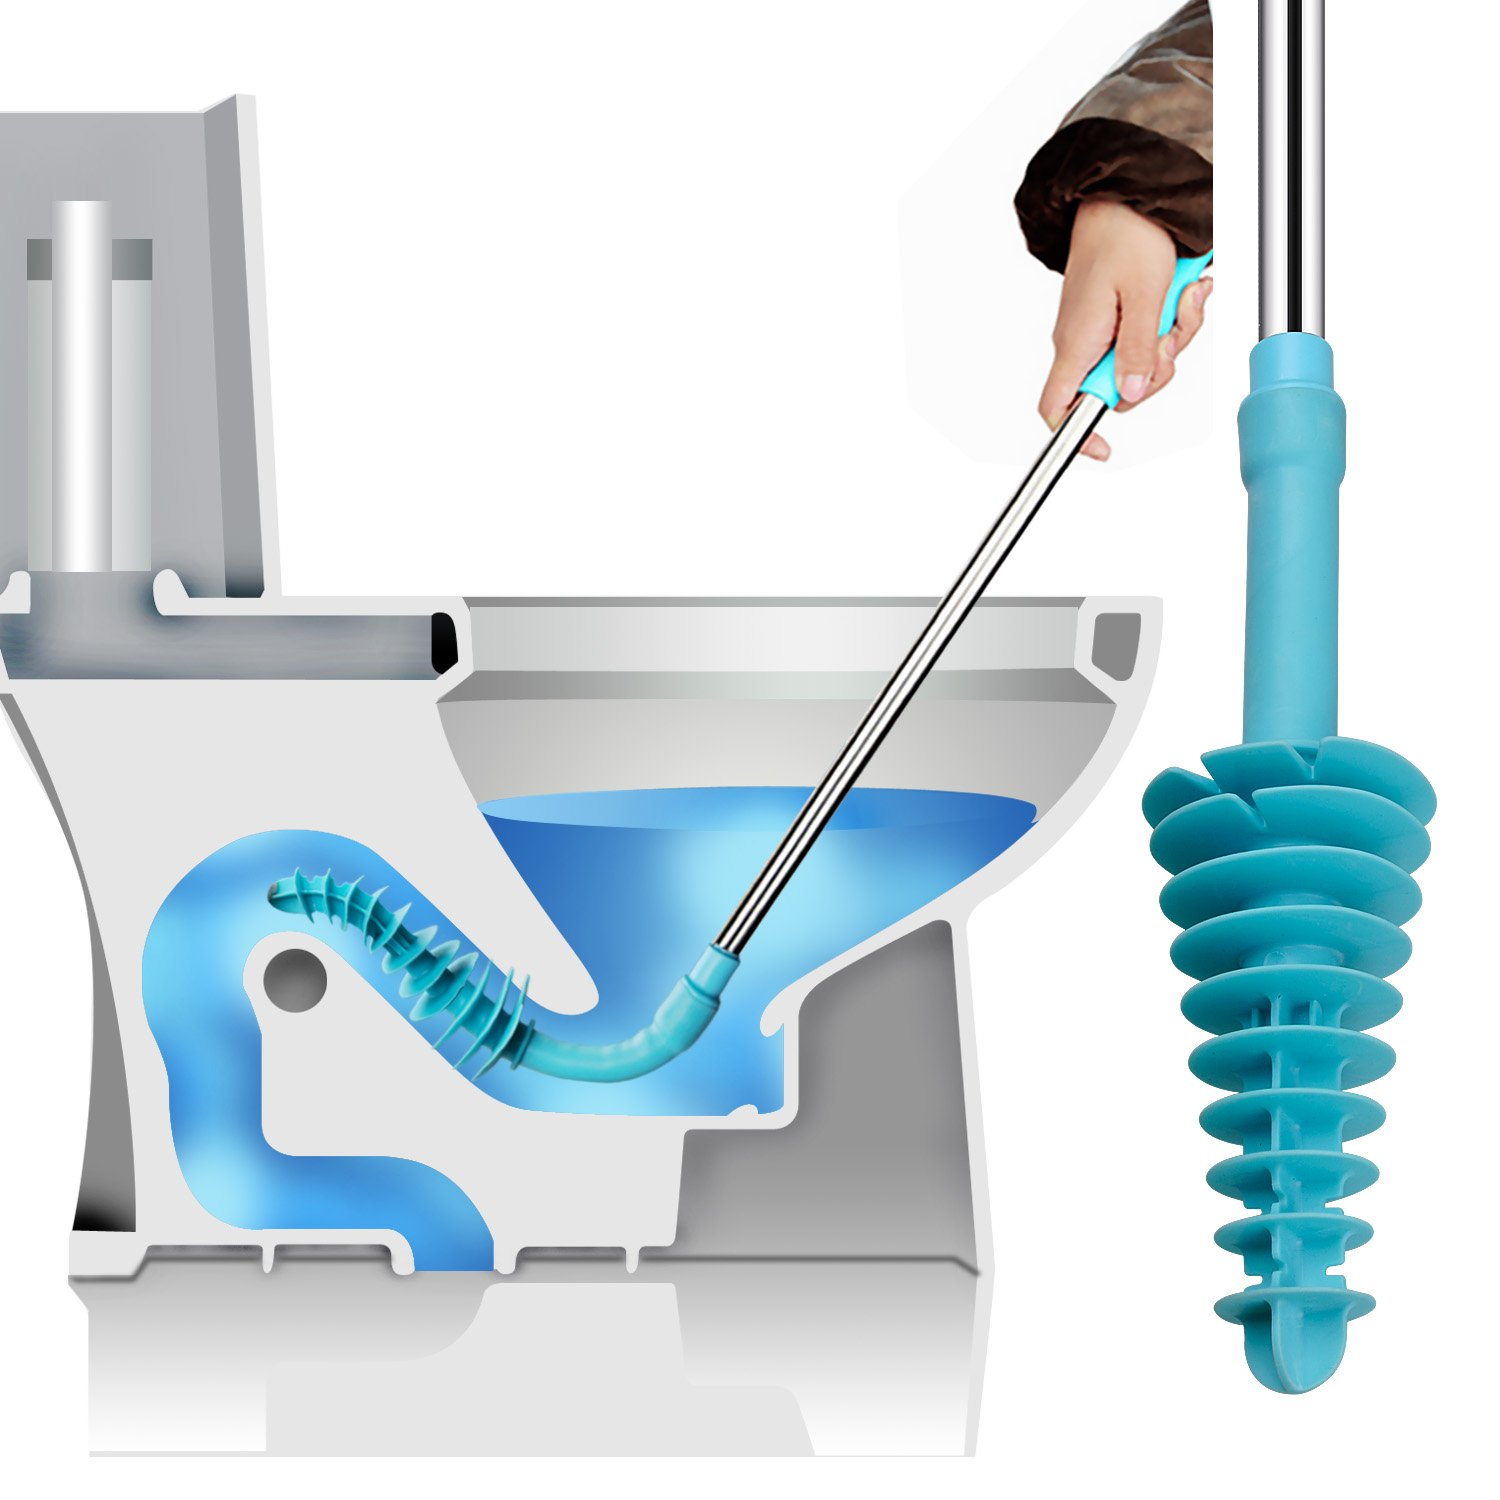 Samshow Toilet Plunger, Toilet Dredge Designed for Siphon-Type, Power Cleaned Toilet Pipe, Patented, Environmentally Friendly, Stainless Steel Handle with Wall Hook by Samshow